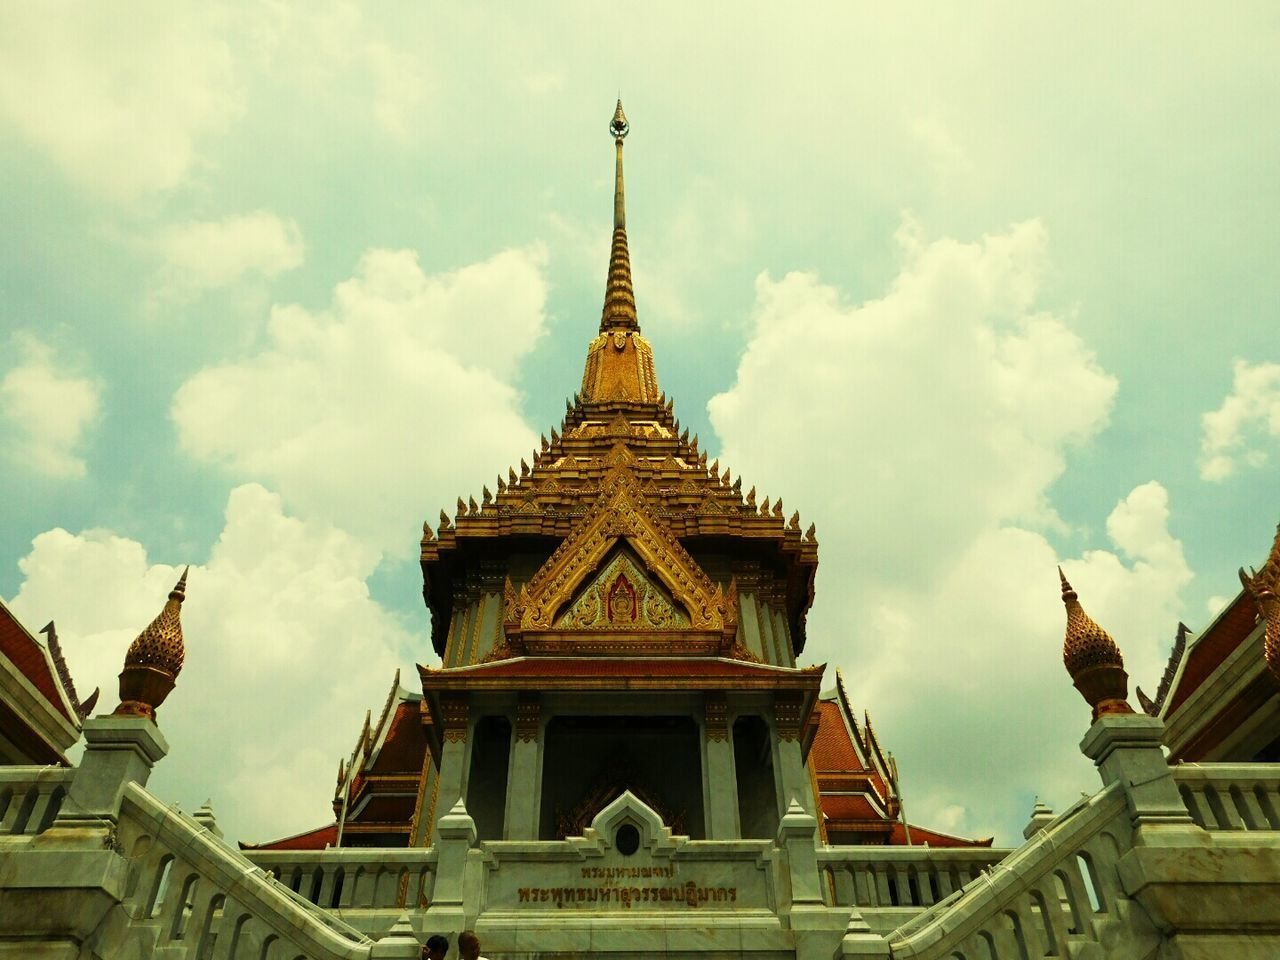 Religion Architecture Tourism Ancient Travel Gold Colored Statue Arts Culture And Entertainment History Travel Destinations Pagoda Gold Arrival Beauty Landscape Sky No People Nature King - Royal Person Outdoors